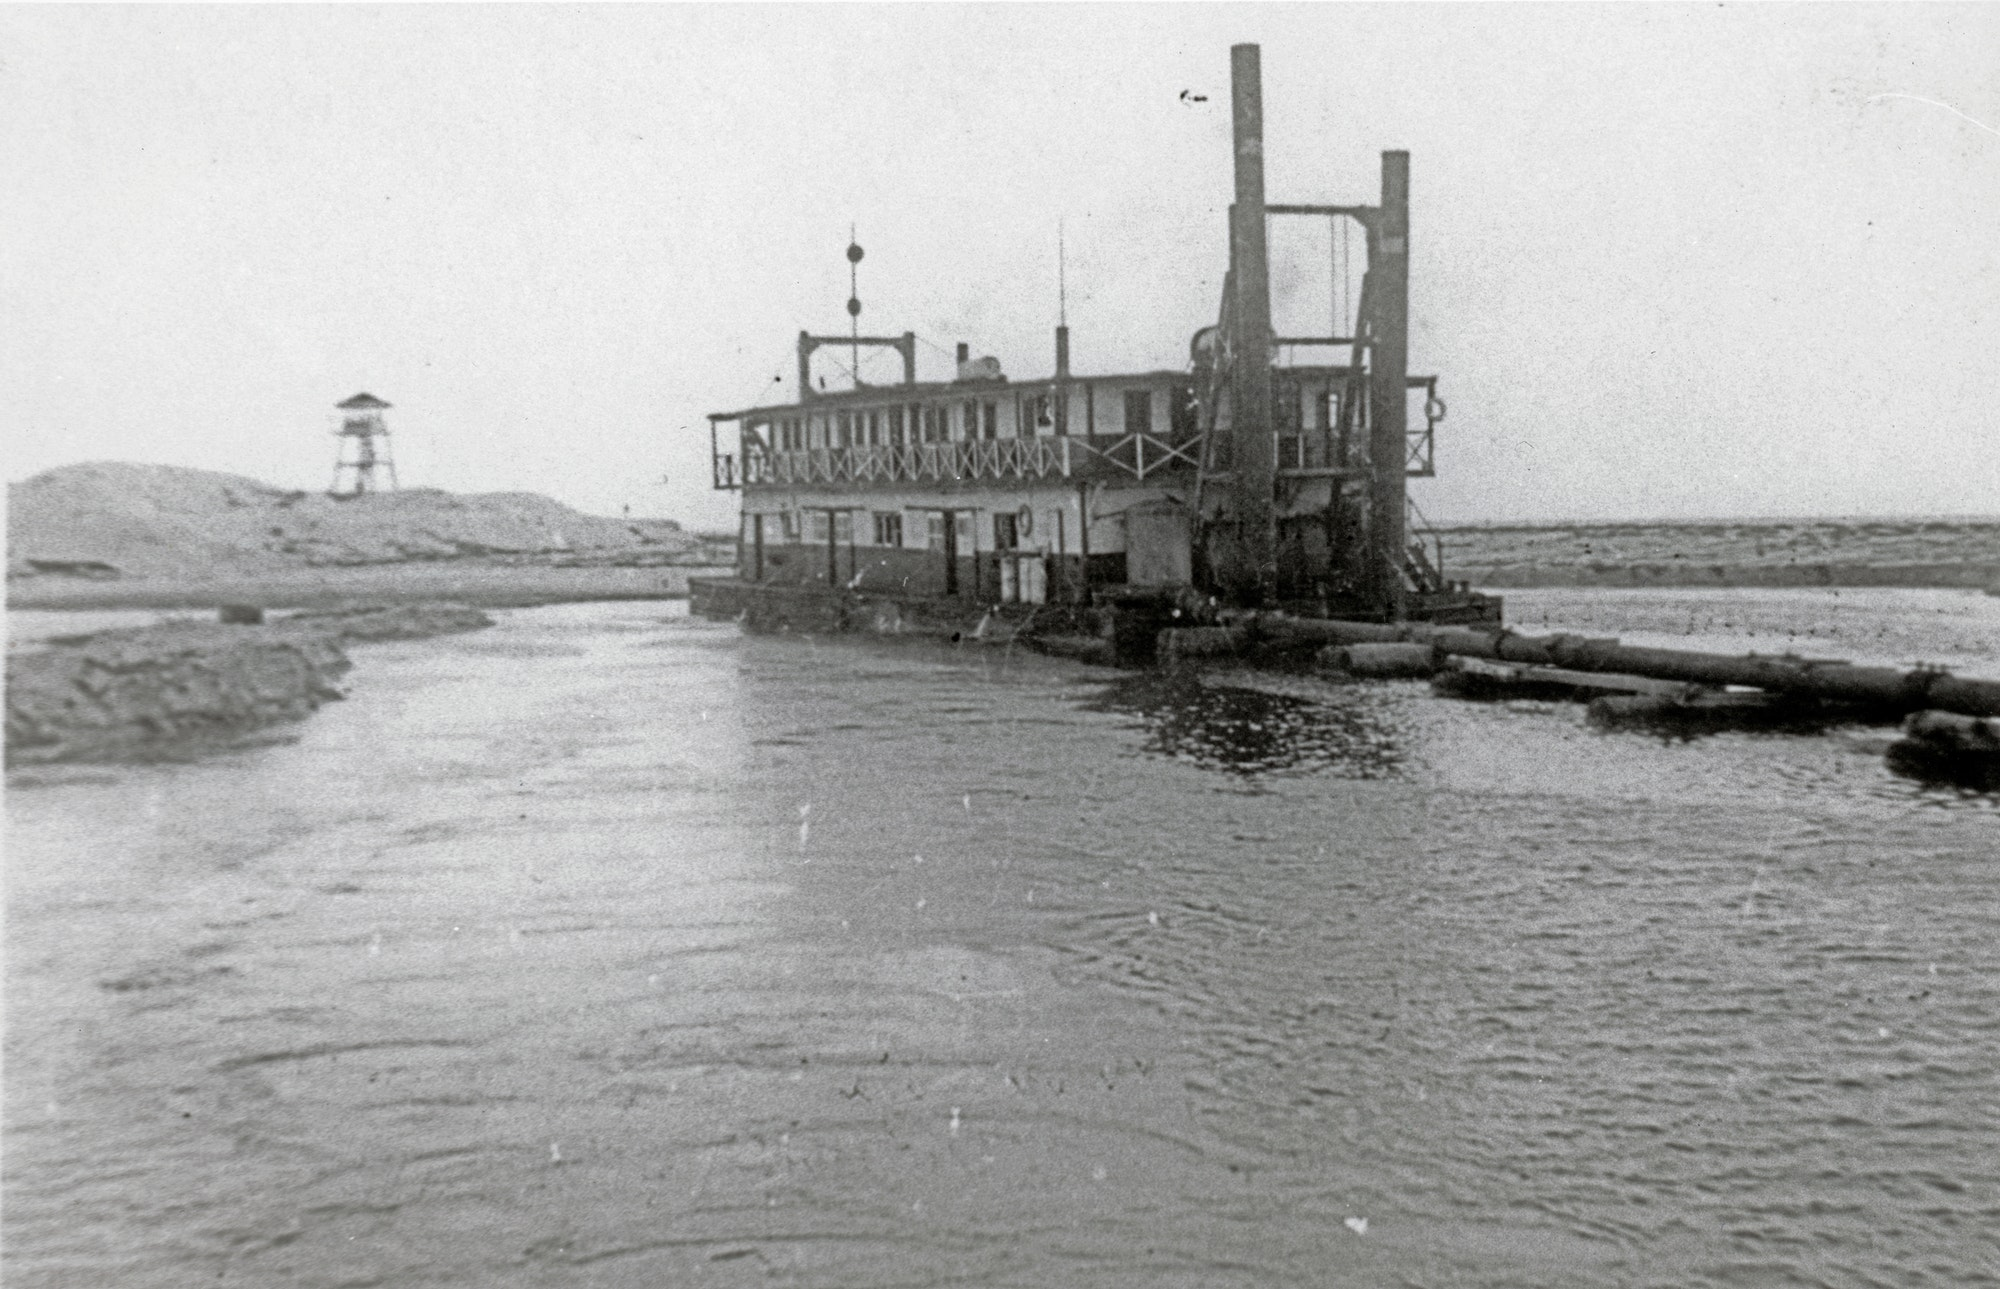 picture of dredge vessel named Summer Dade from 1948